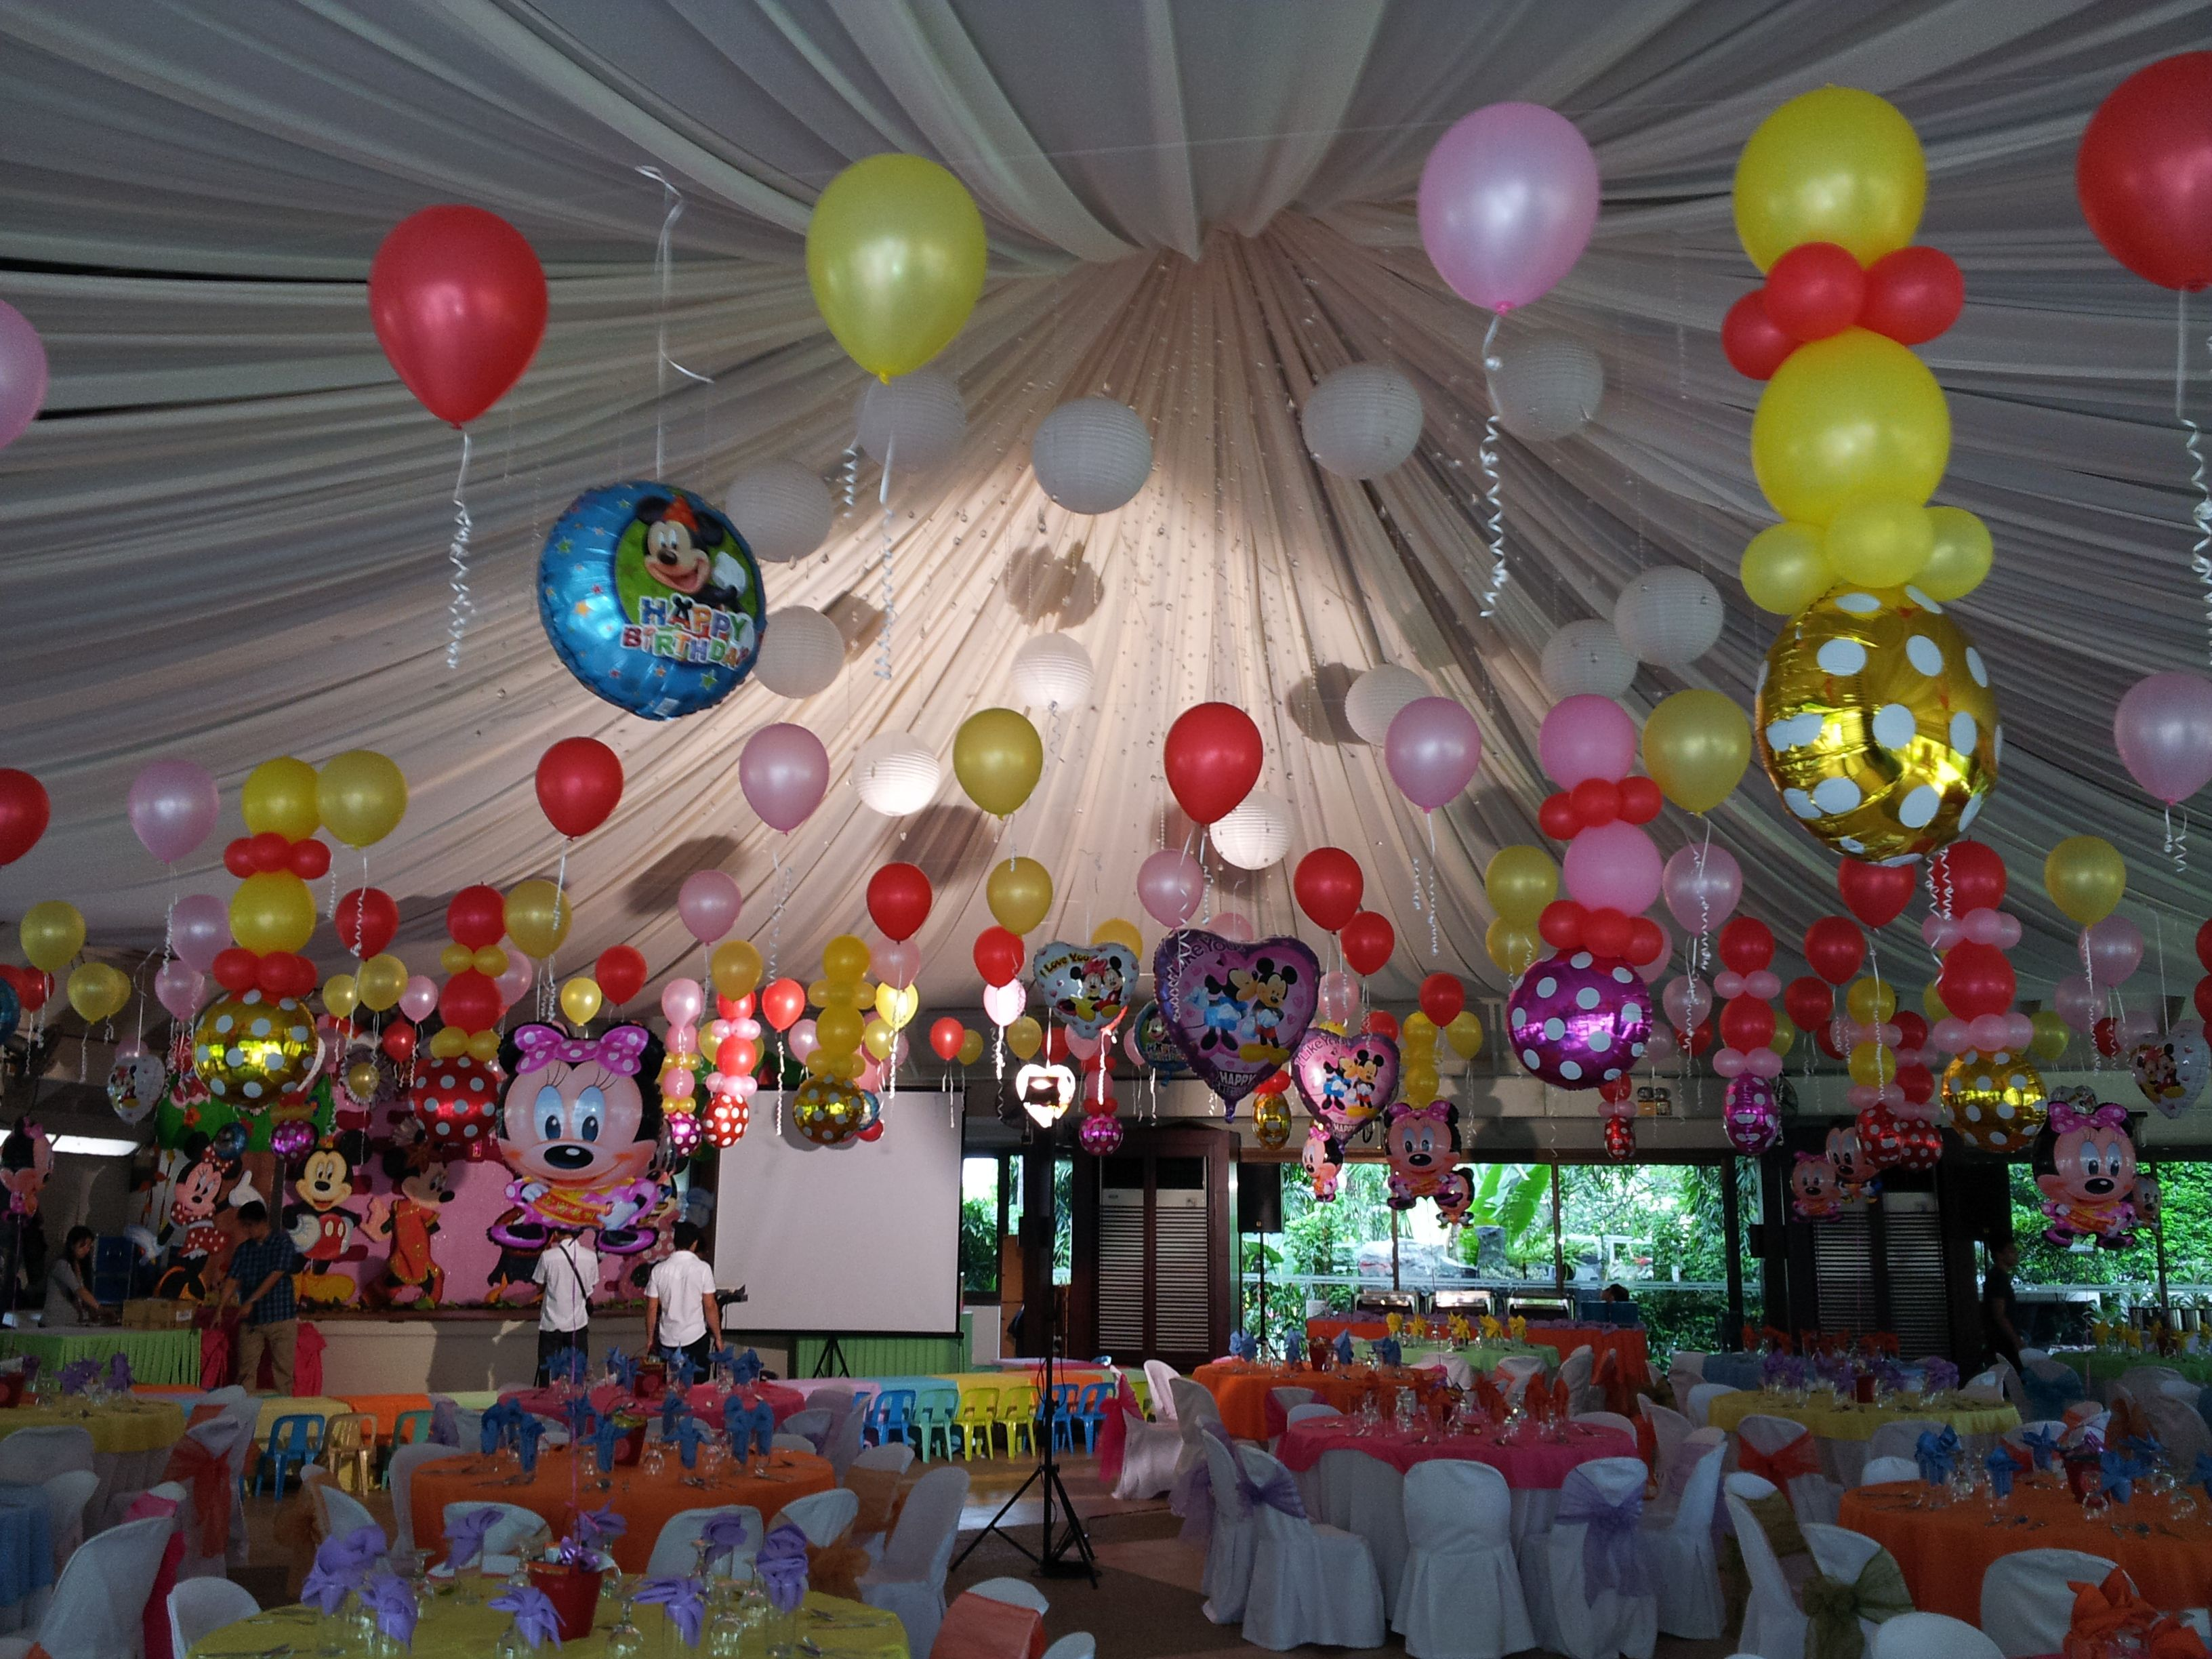 Balloon ceiling decor events pinterest for Balloon ceiling decoration